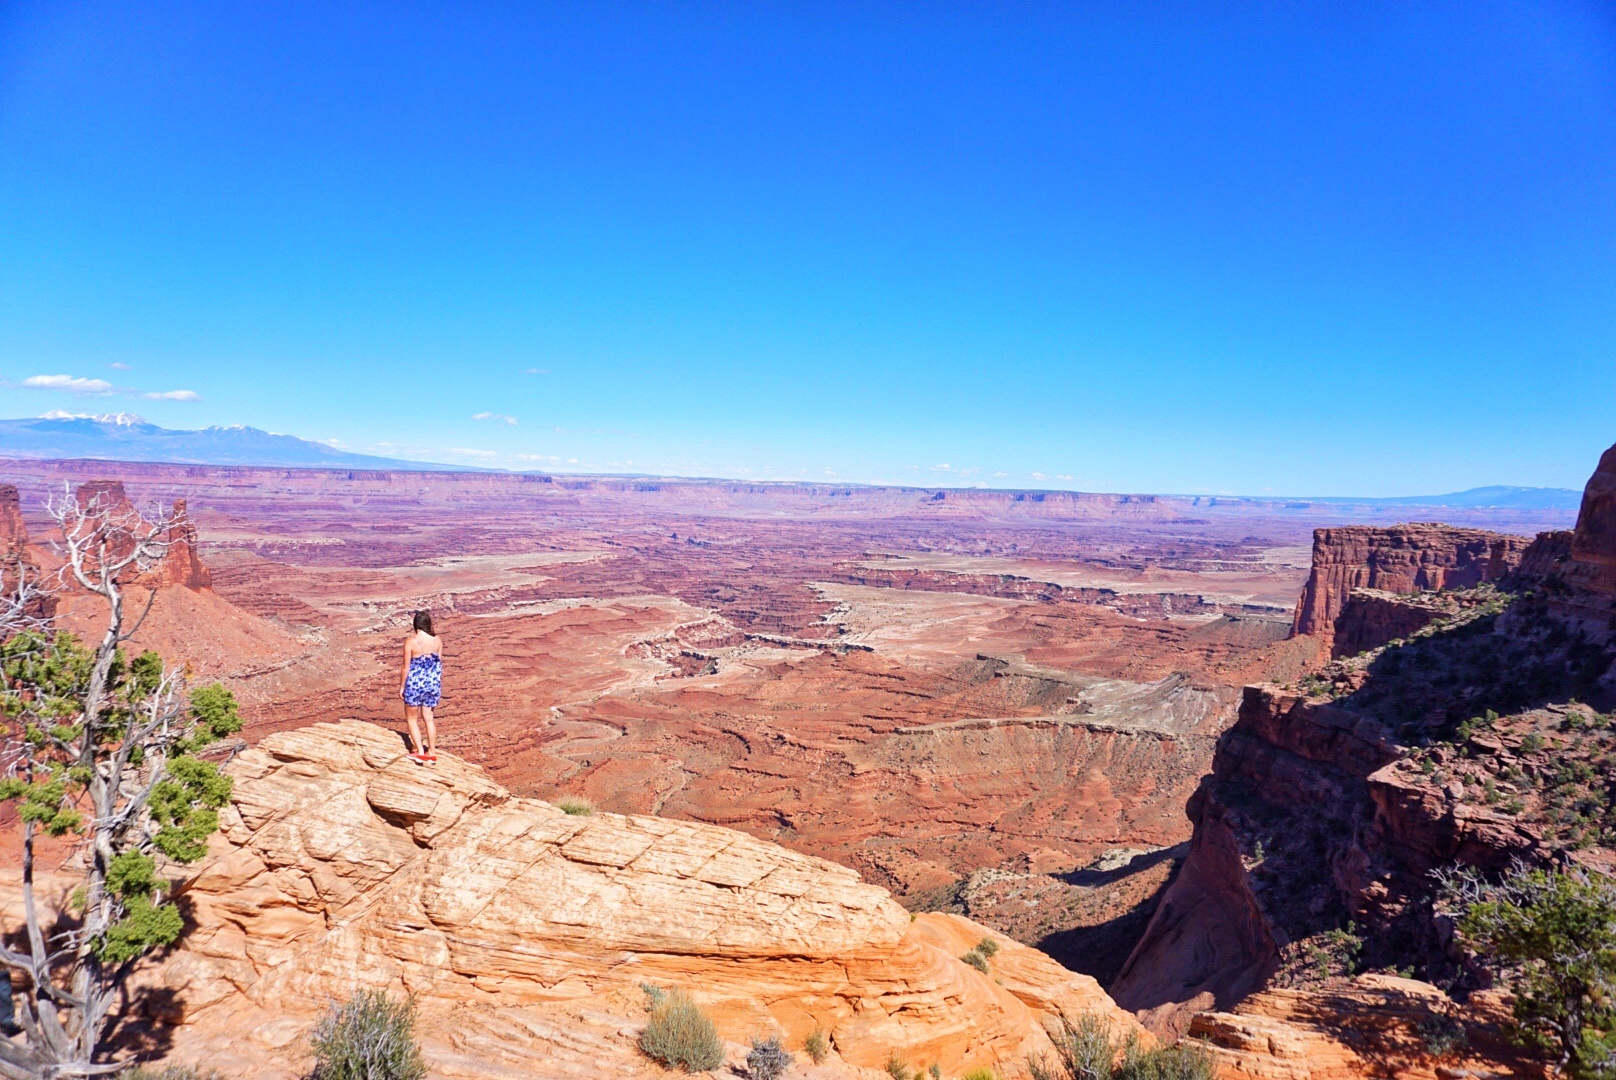 Allison standing at the edge in Canyonlands national park